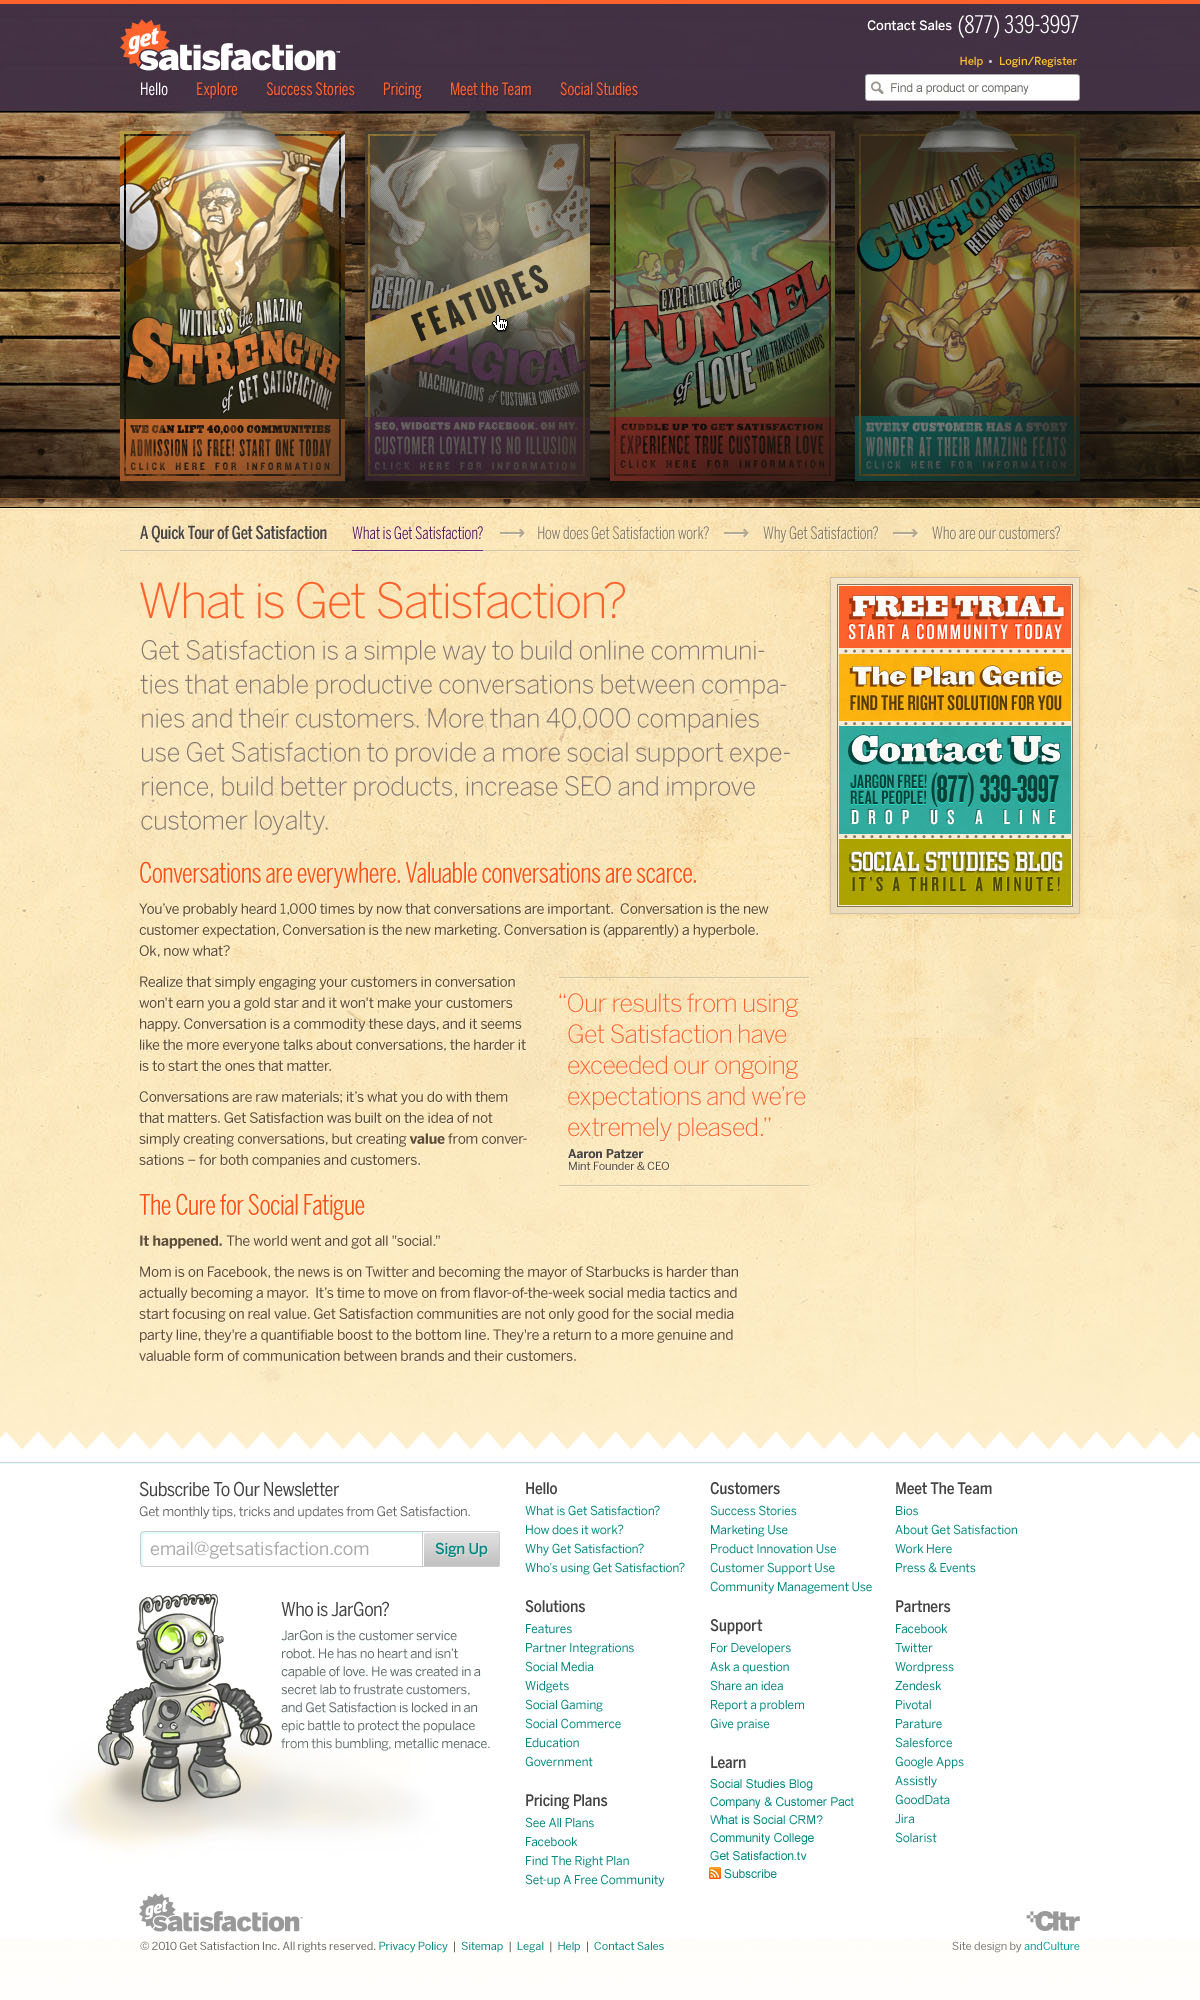 Get Satisfaction, About Get Satisfaction page, September 2010